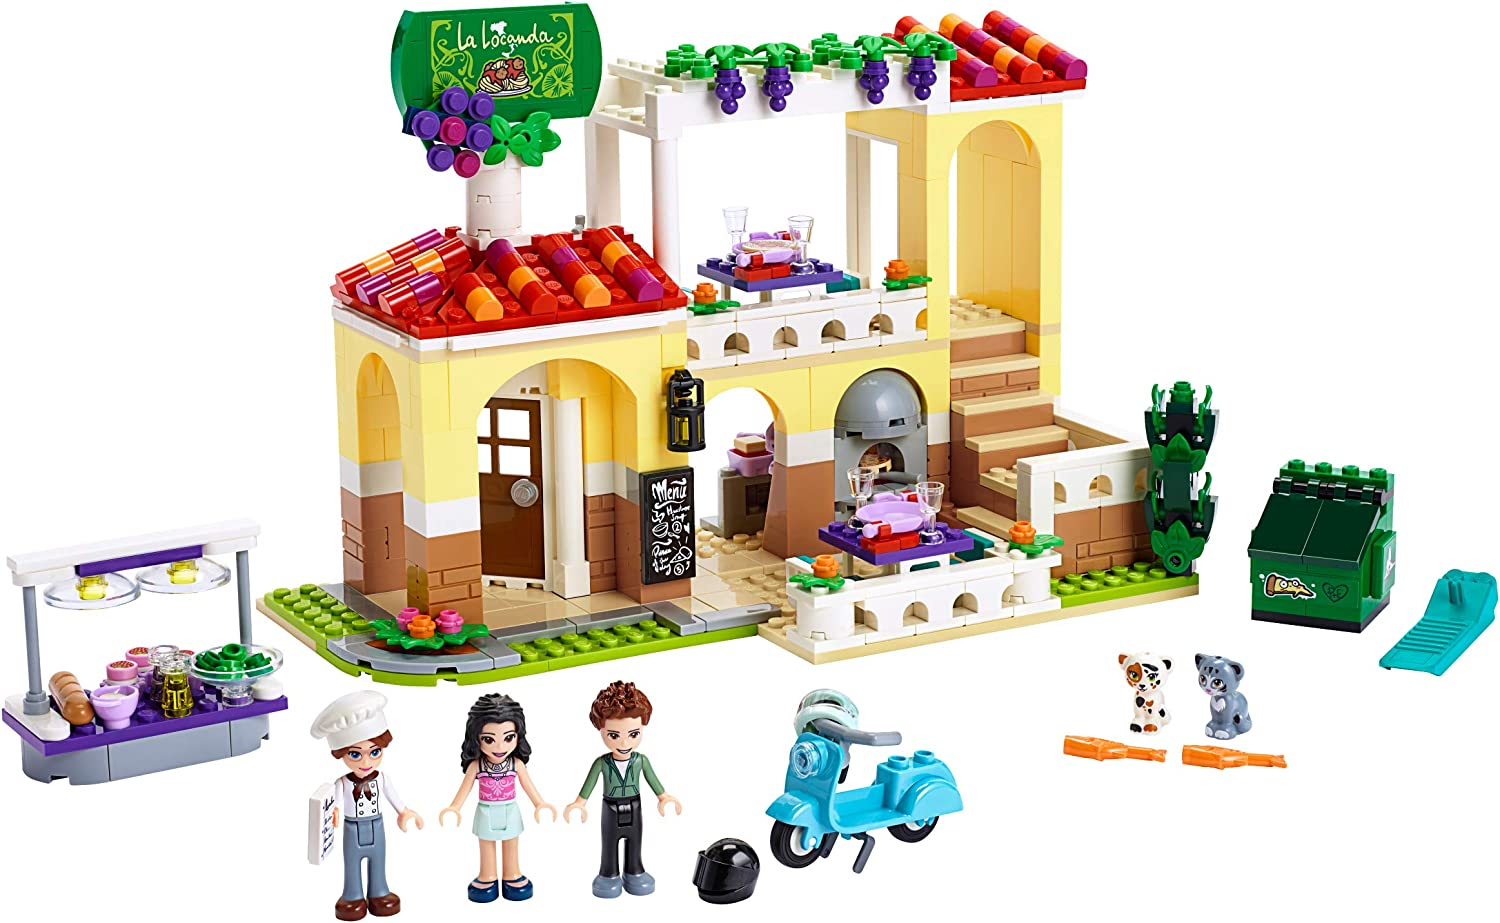 LEGO Friends Heartlake City Restaurant 41379 Restaurant Playset with Mini Dolls and Toy Scooter for Pretend Play, Cool Building Kit Includes Toy Kitchen, Pizza Oven and More (624 Pieces)